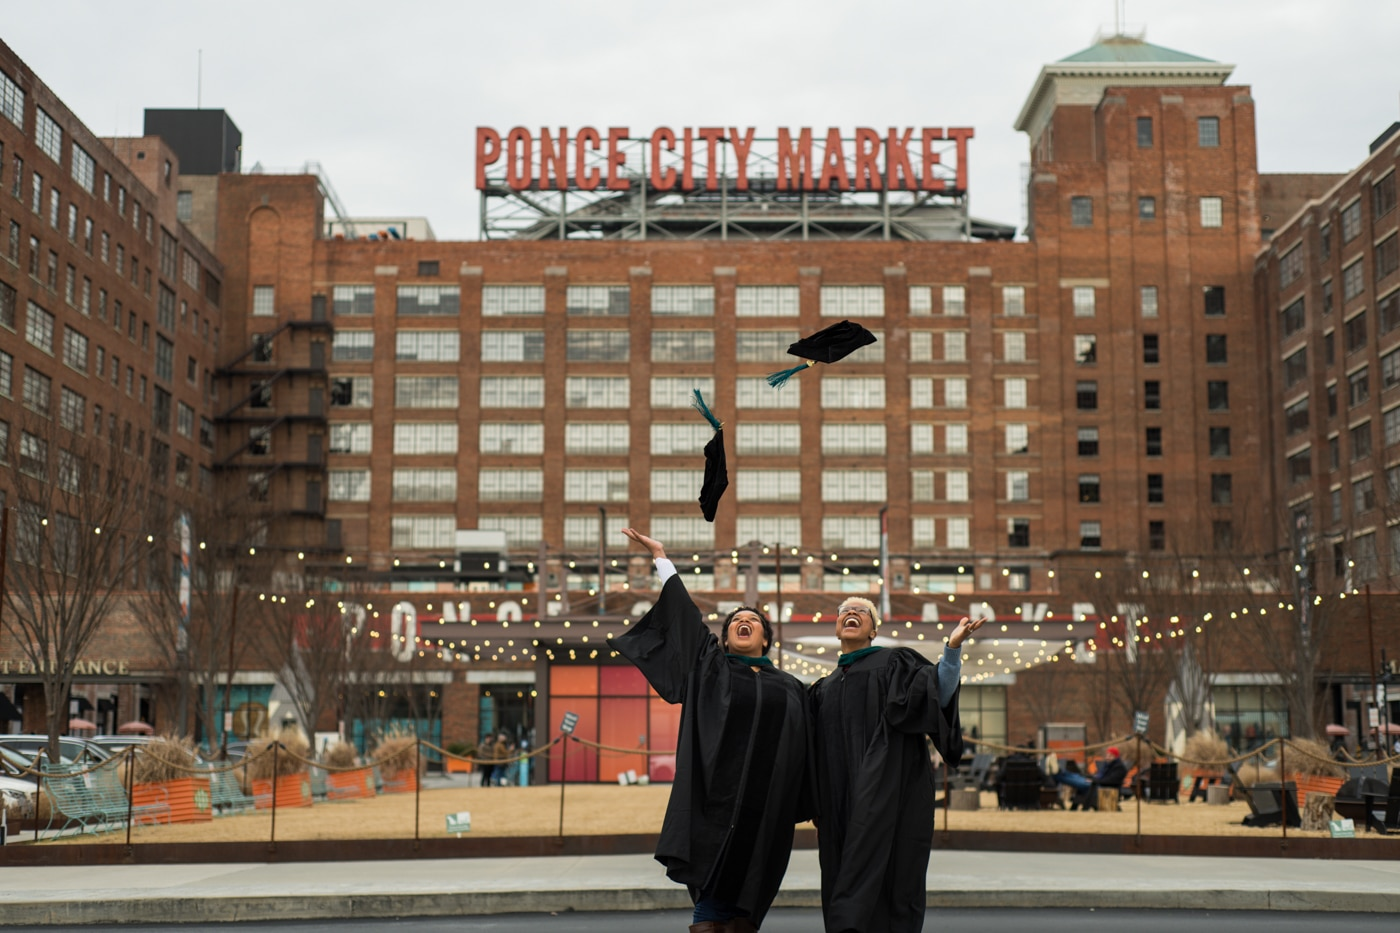 couple tosses caps standing in front of Ponce City Market